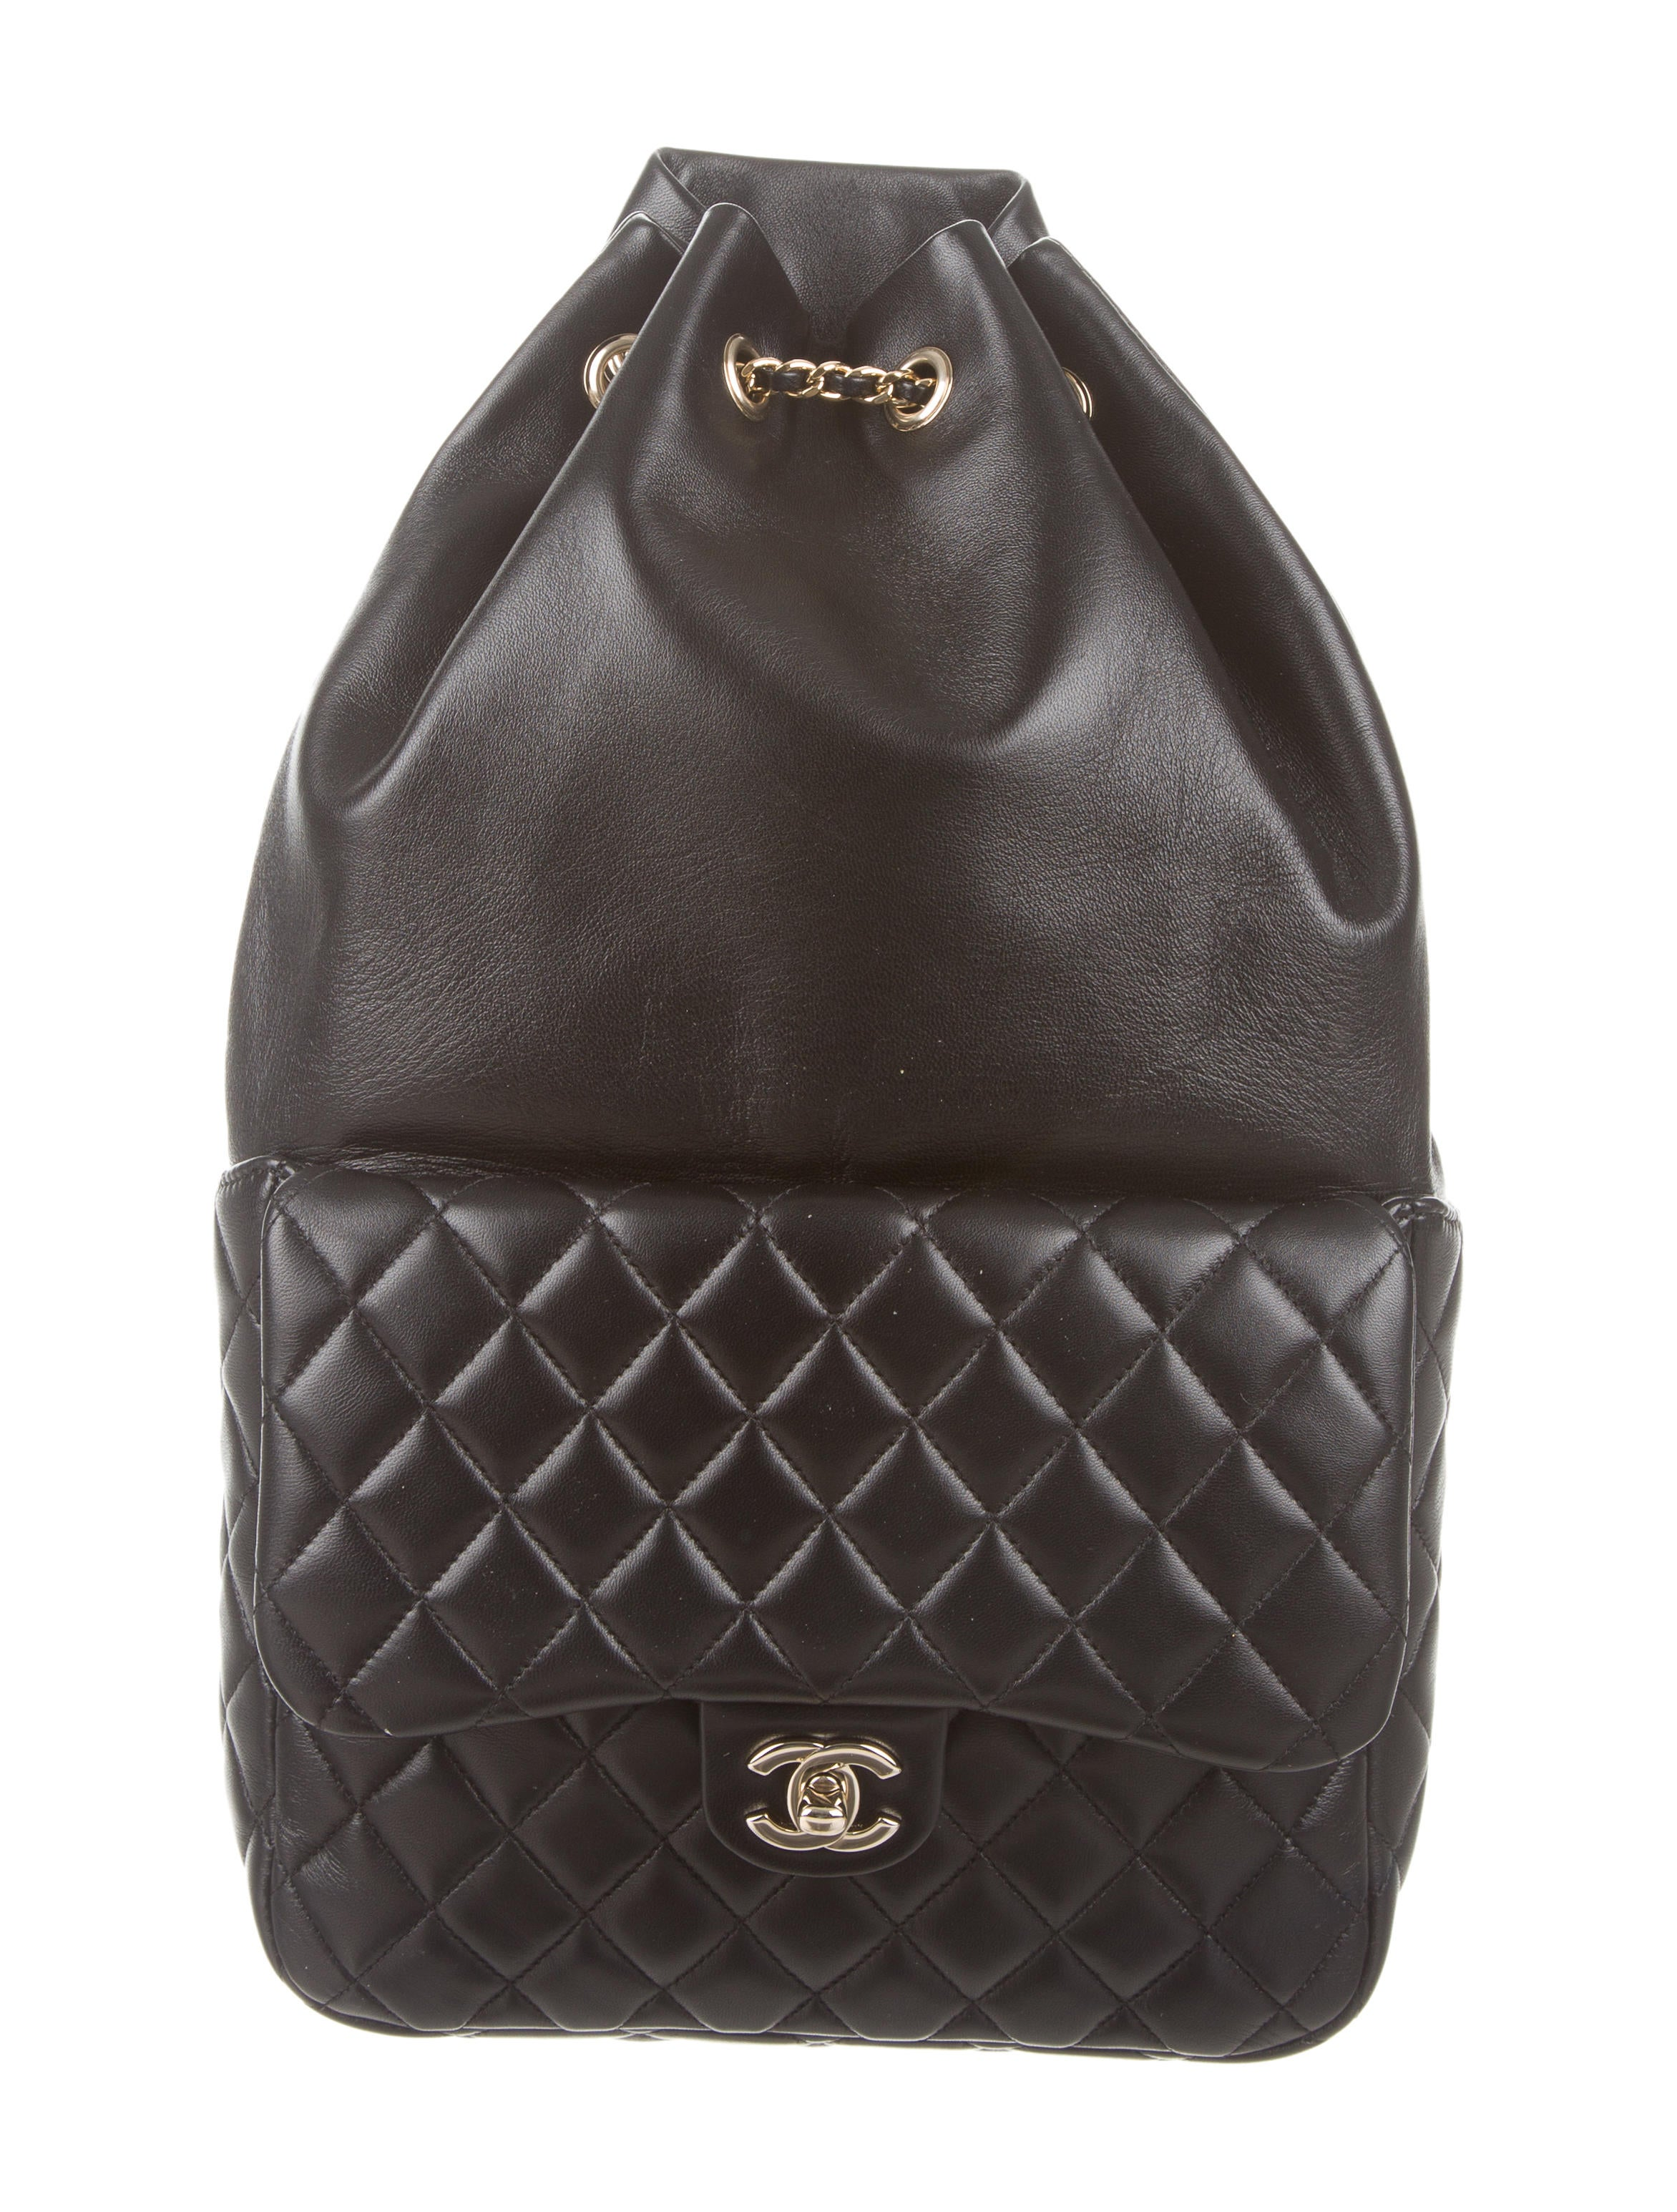 ccf1f7ff0c46 Chanel Large Backpack In Seoul - Handbags - CHA91656 | The RealReal